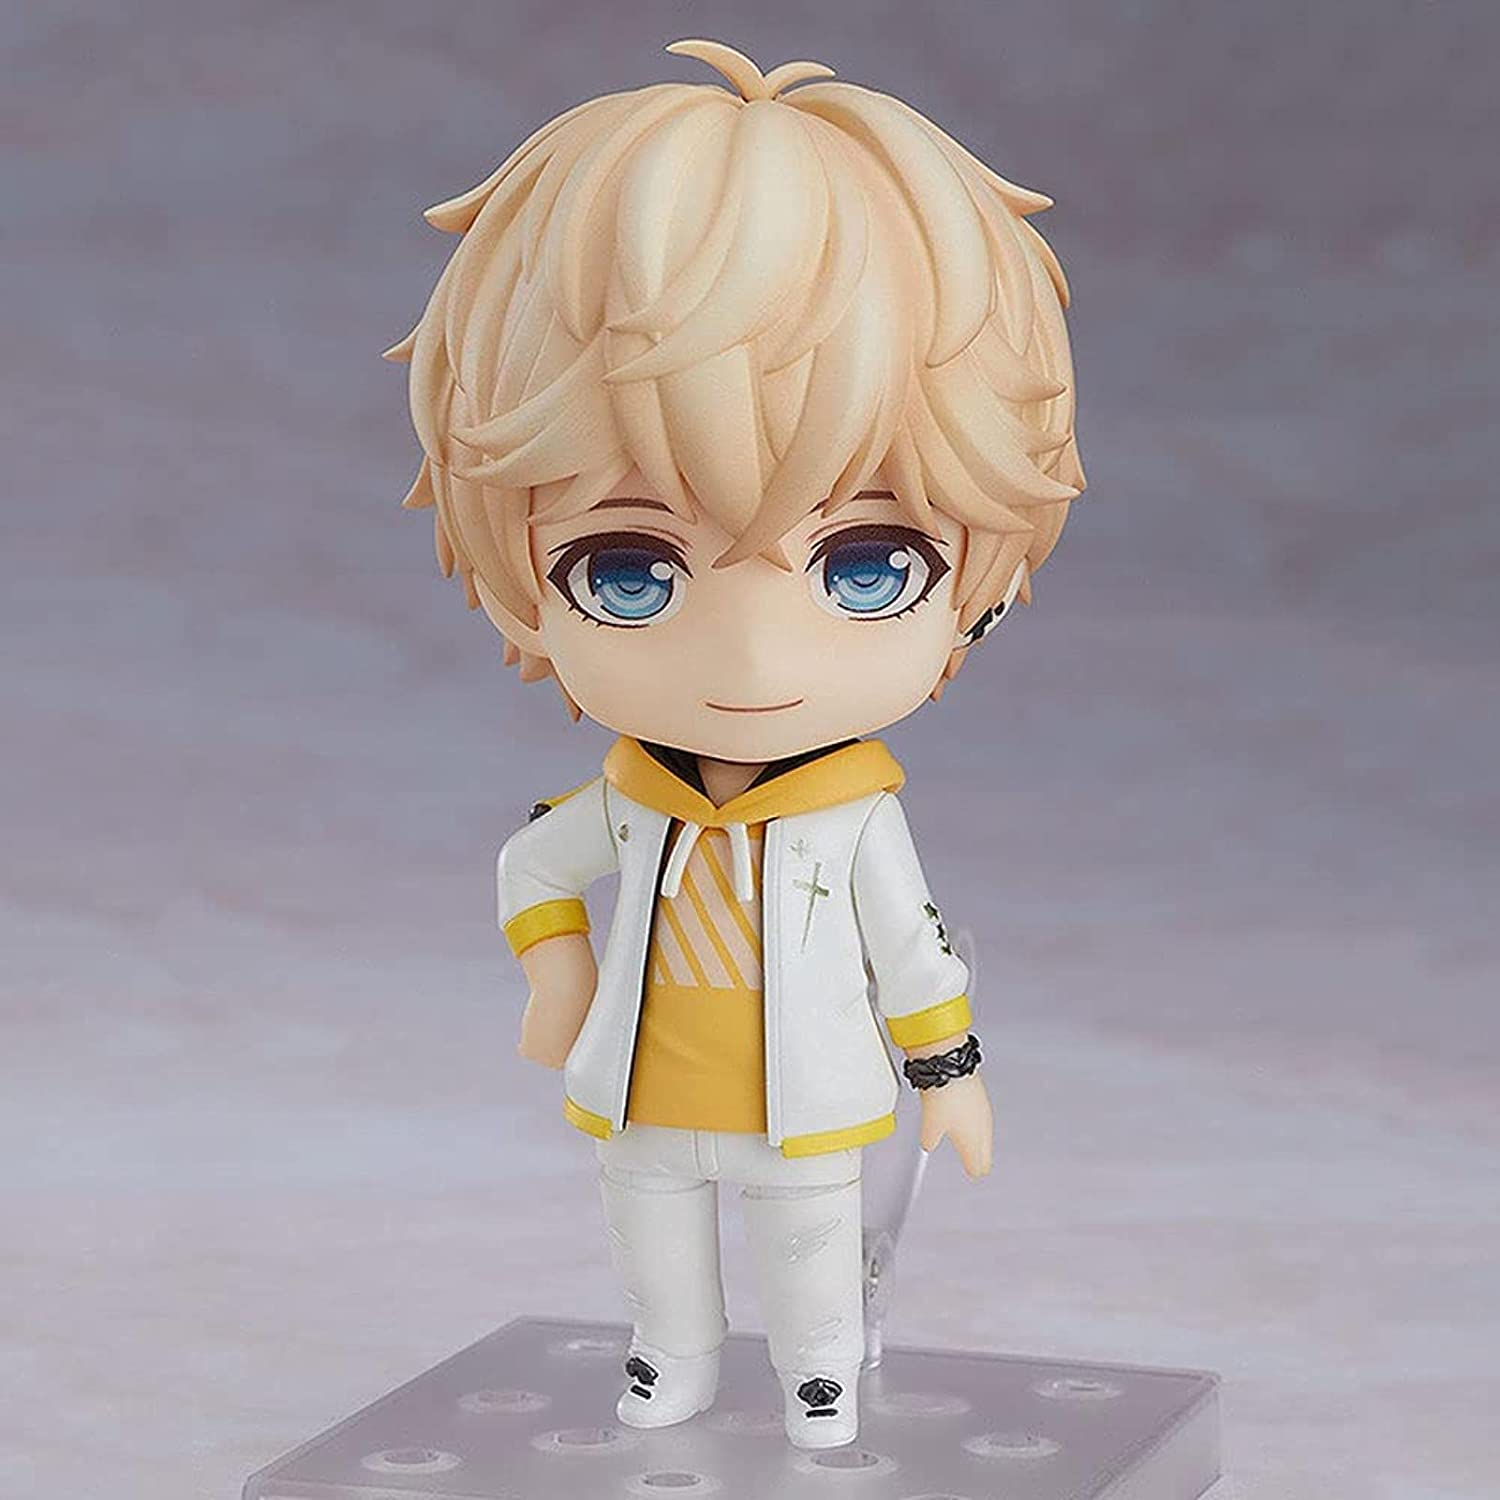 Movable Nendoroid Kilo Figure Sales from Animation The Super Special SALE held is